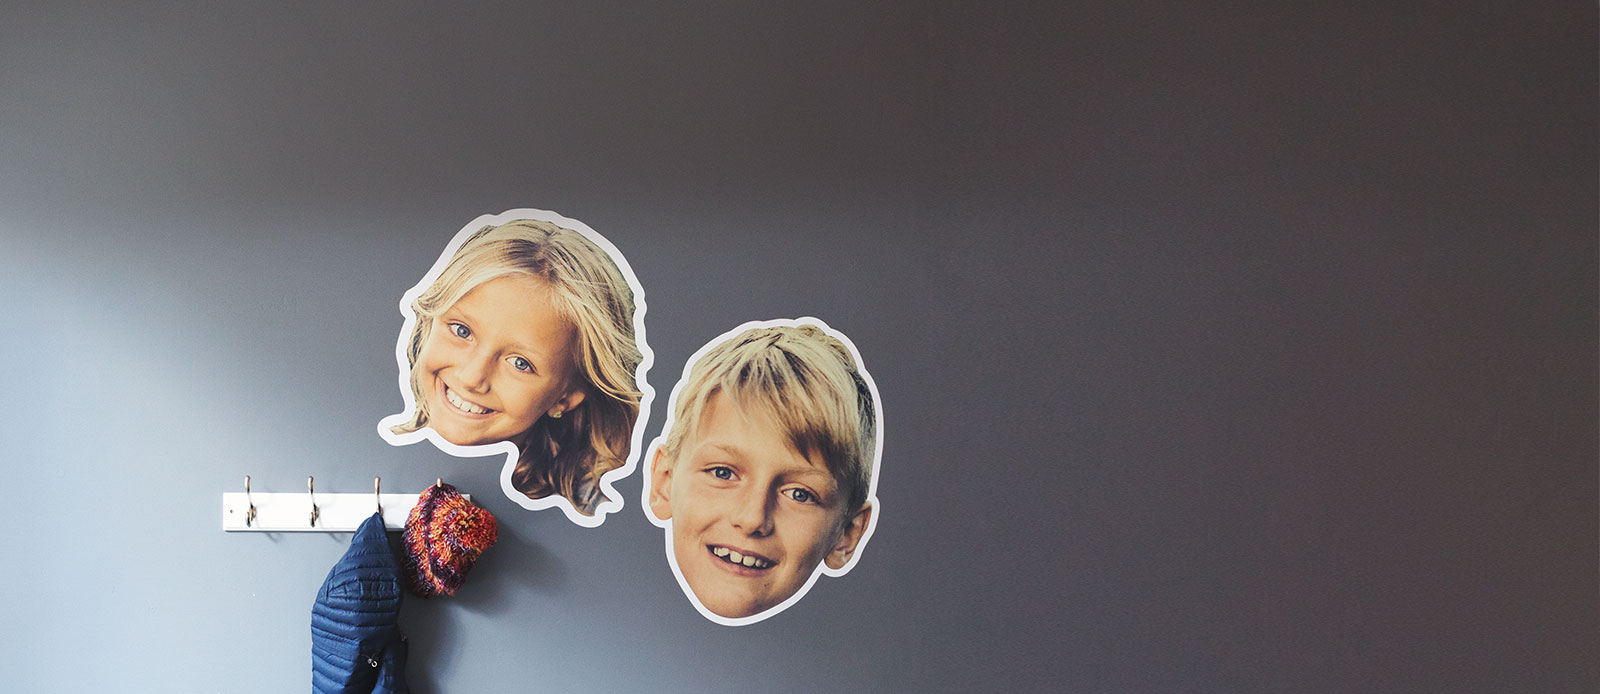 Face wall decals